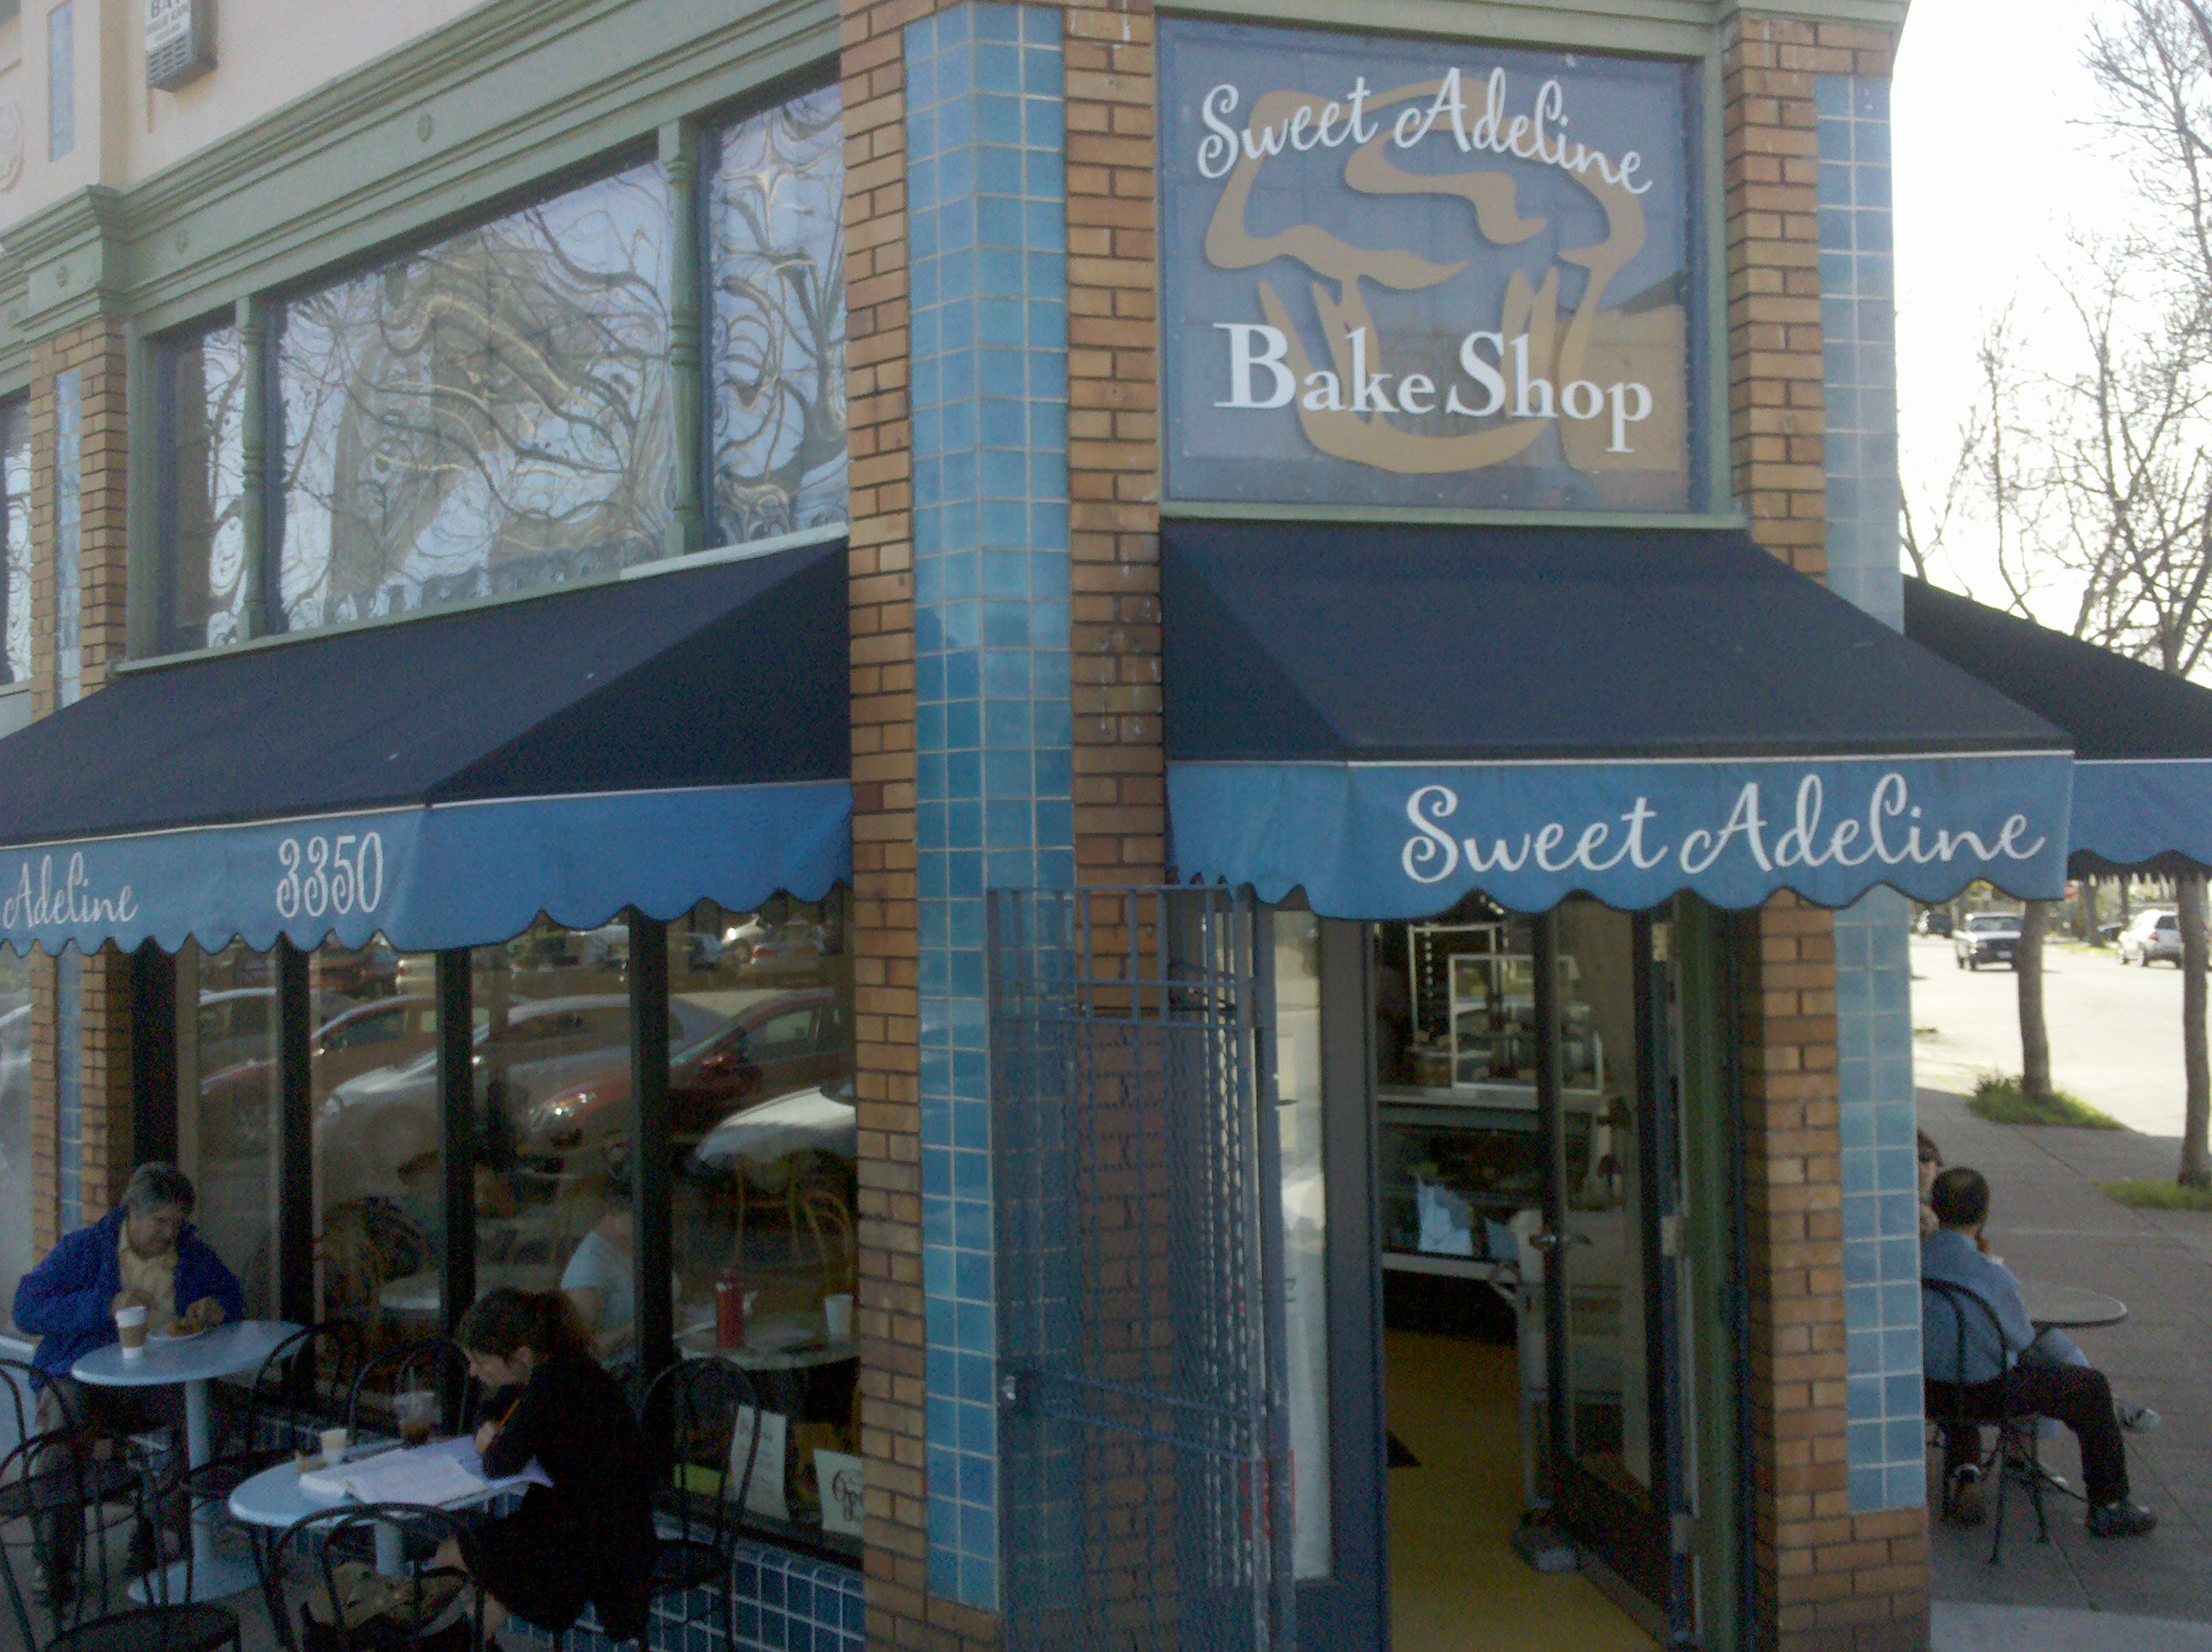 Sweet Adeline Bake Shop at 63rd St and Adeline Ave.